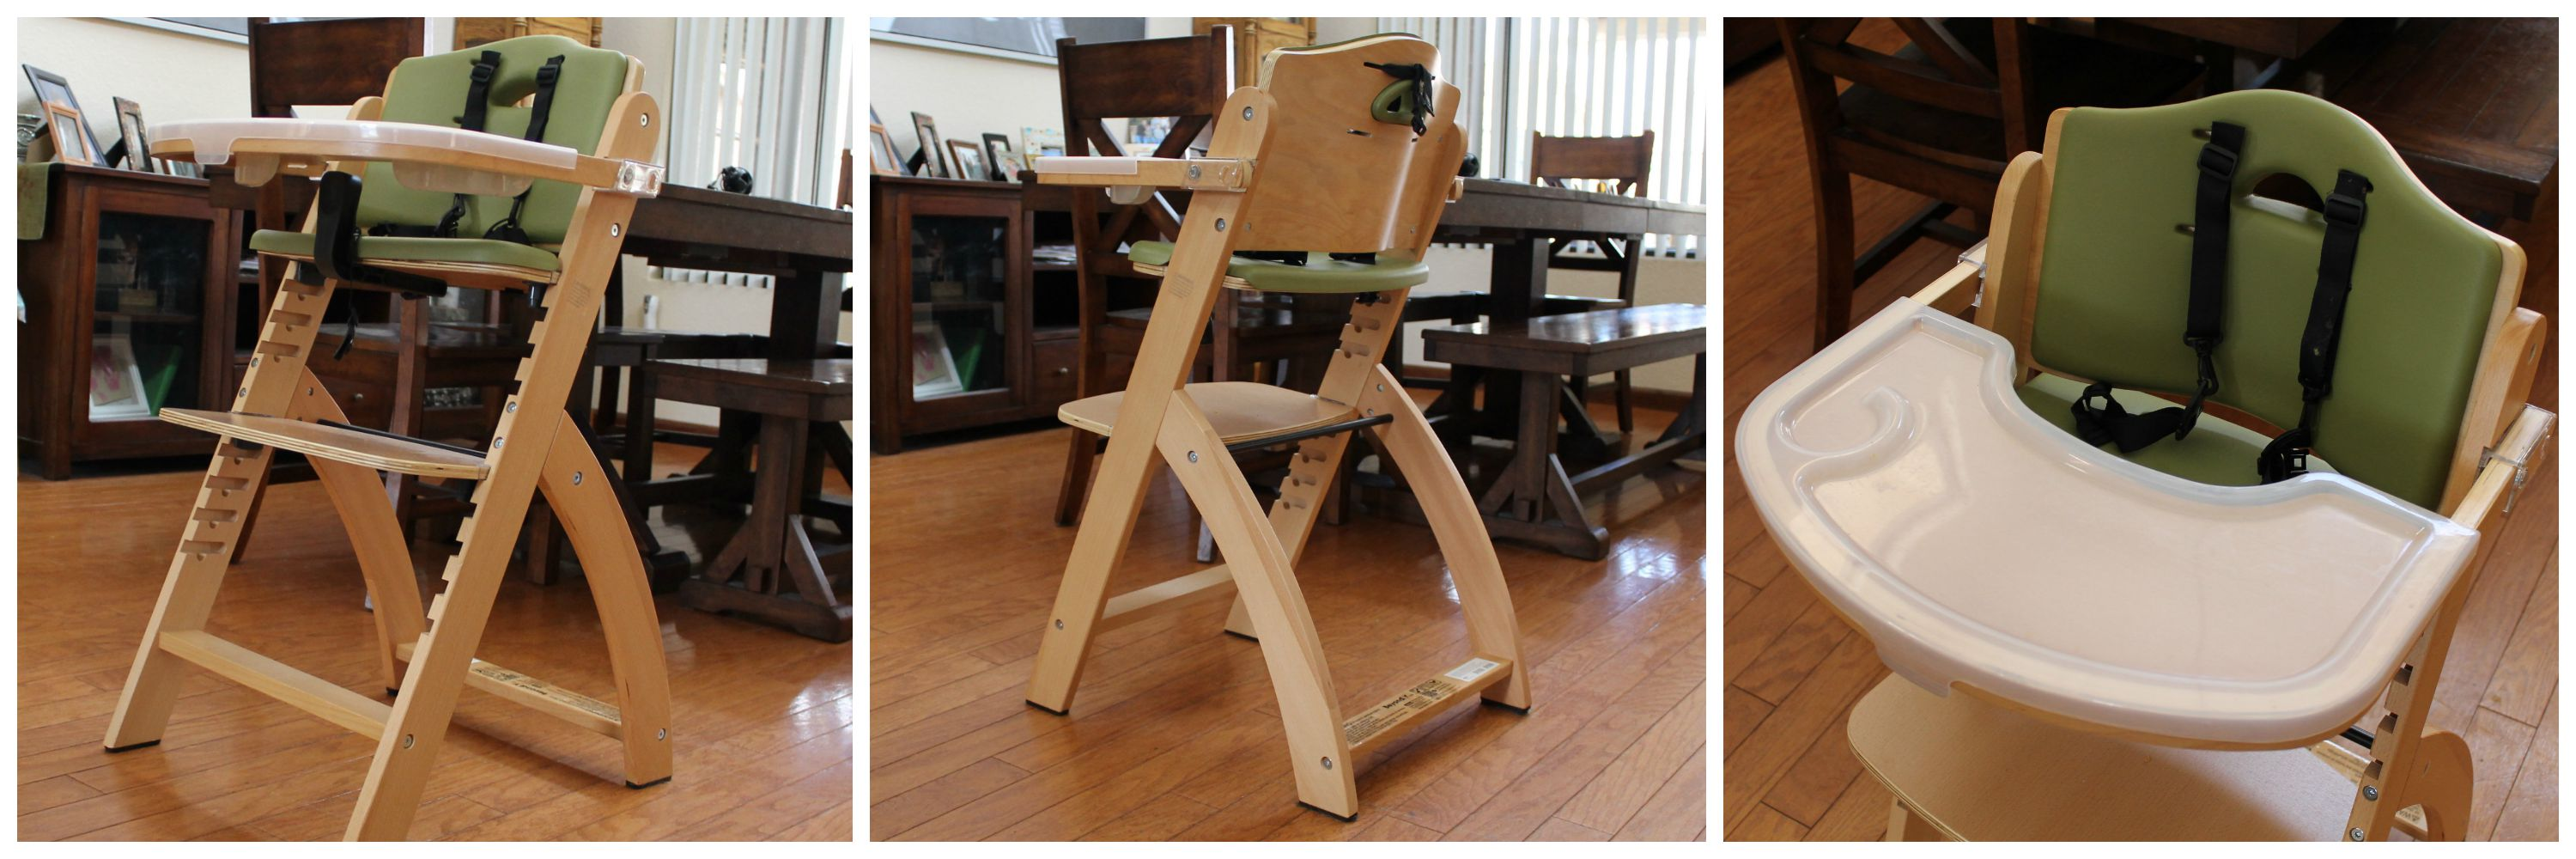 high chair reviews office chairs on wheels uk finding the best abiie review savvy sassy moms